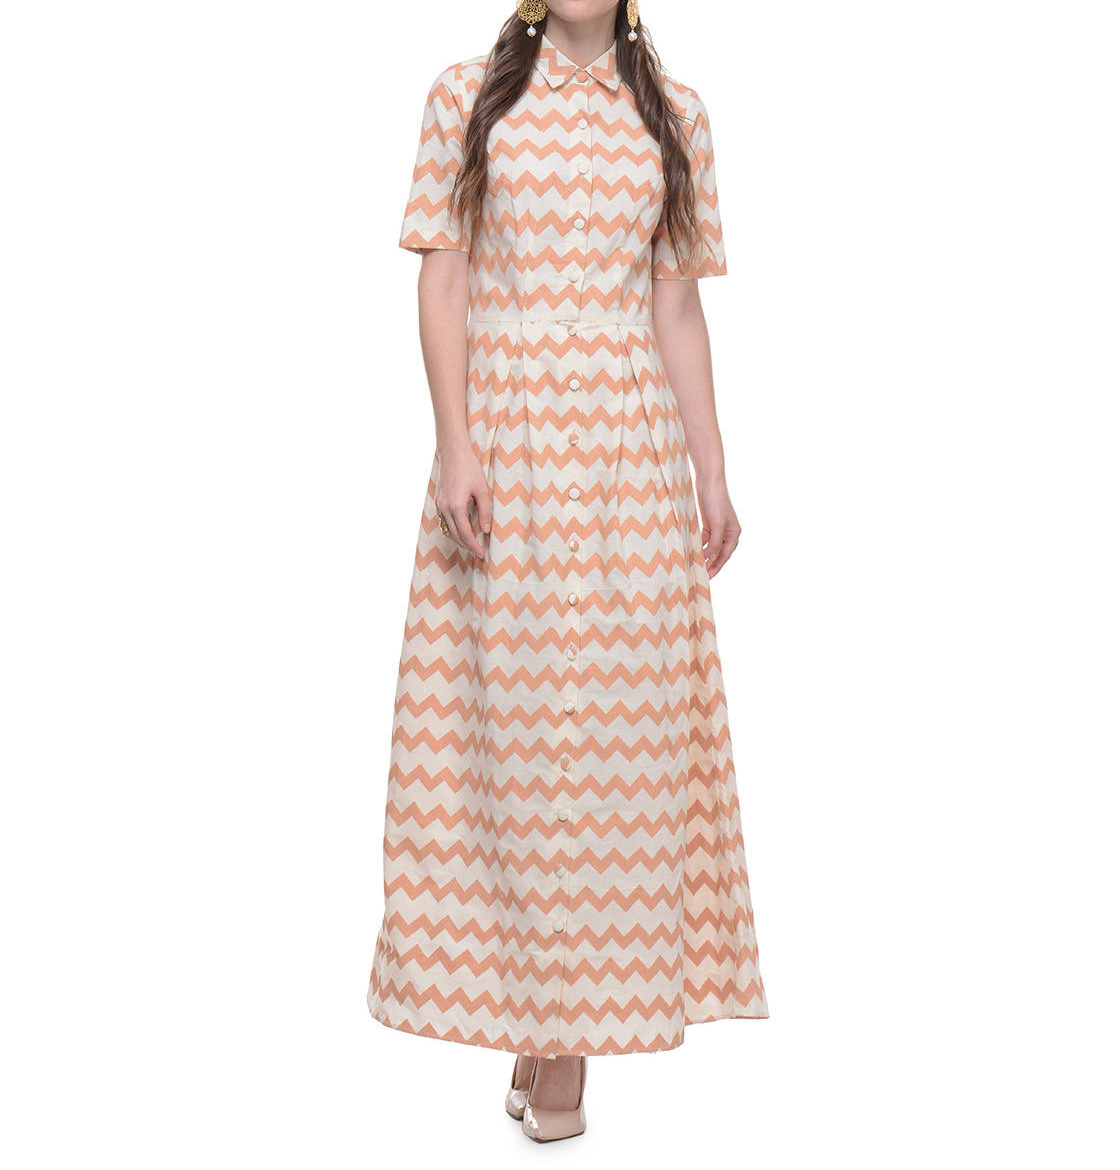 Cotton dress with beige zig zag hand block print